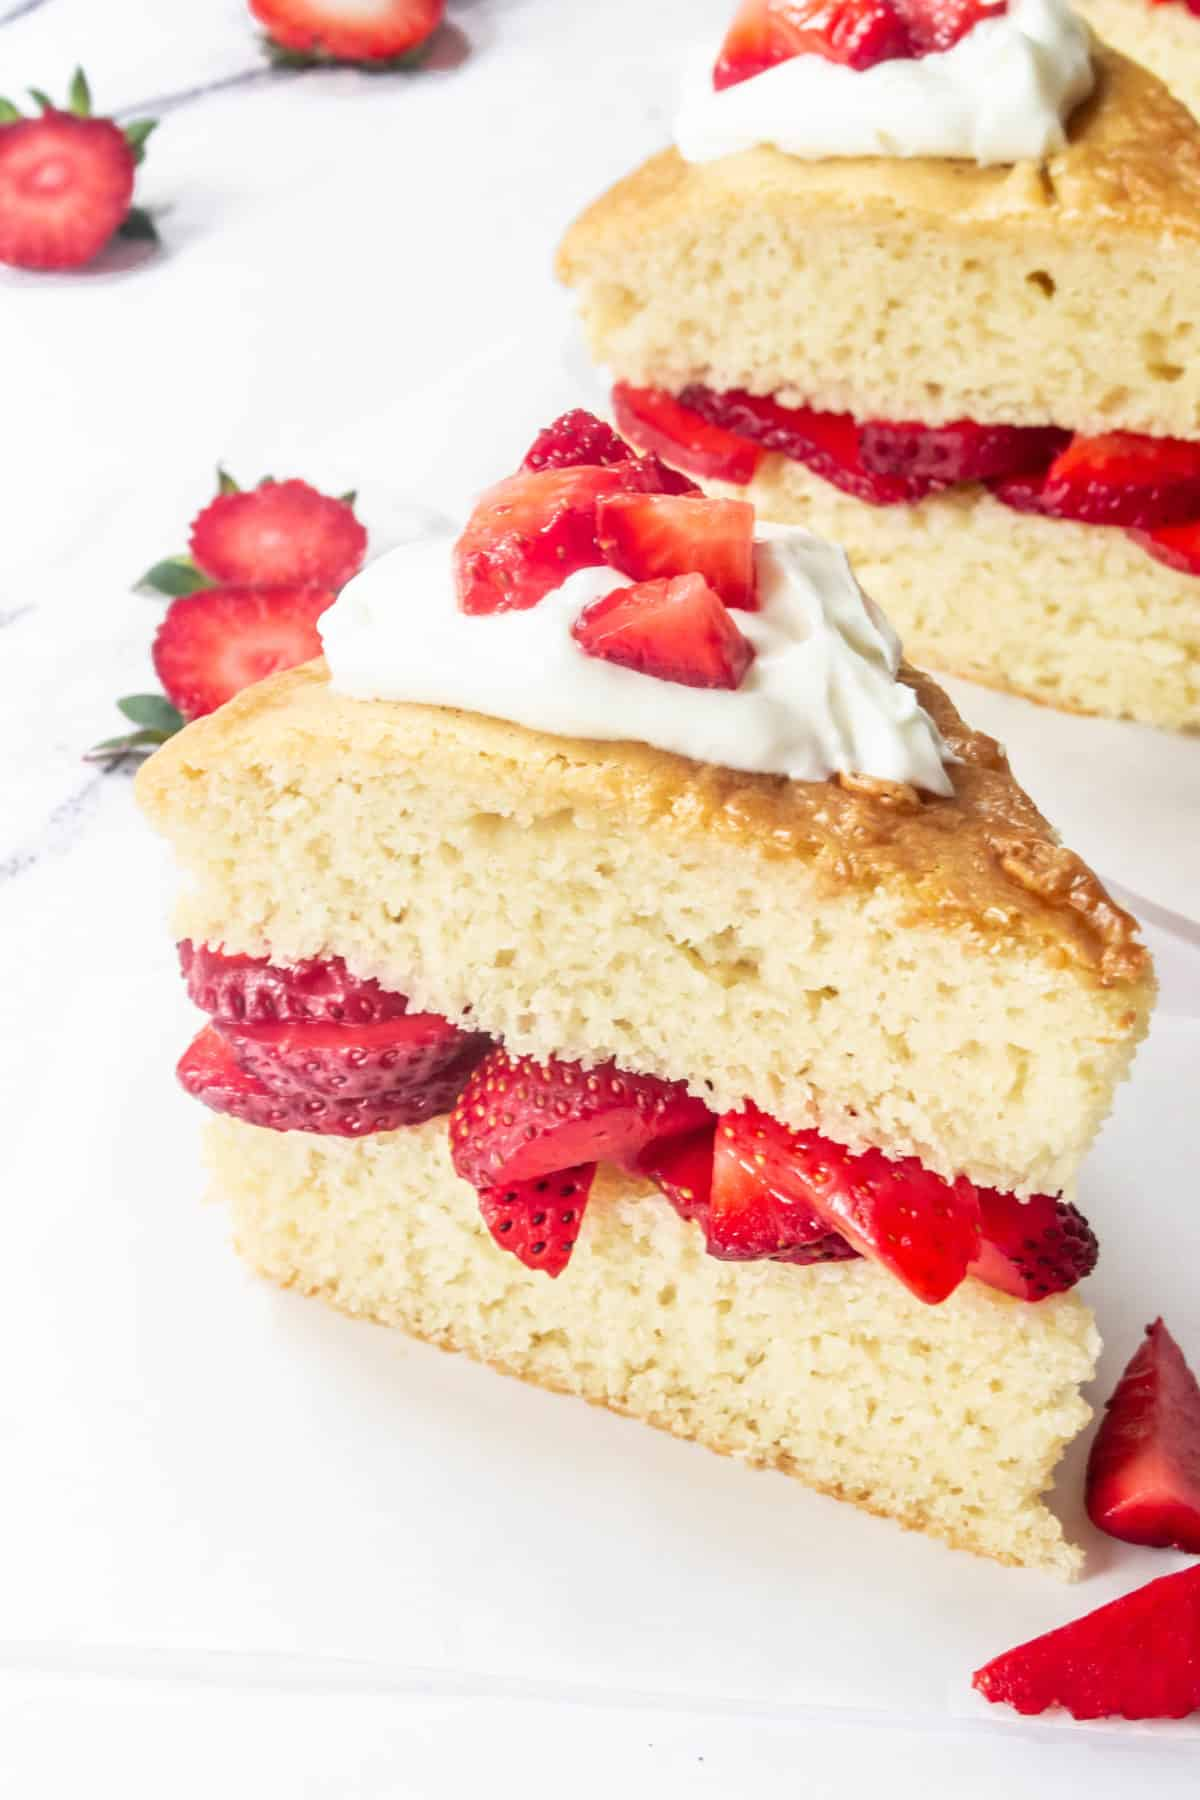 Strawberry shortcake topped with whipped cream.